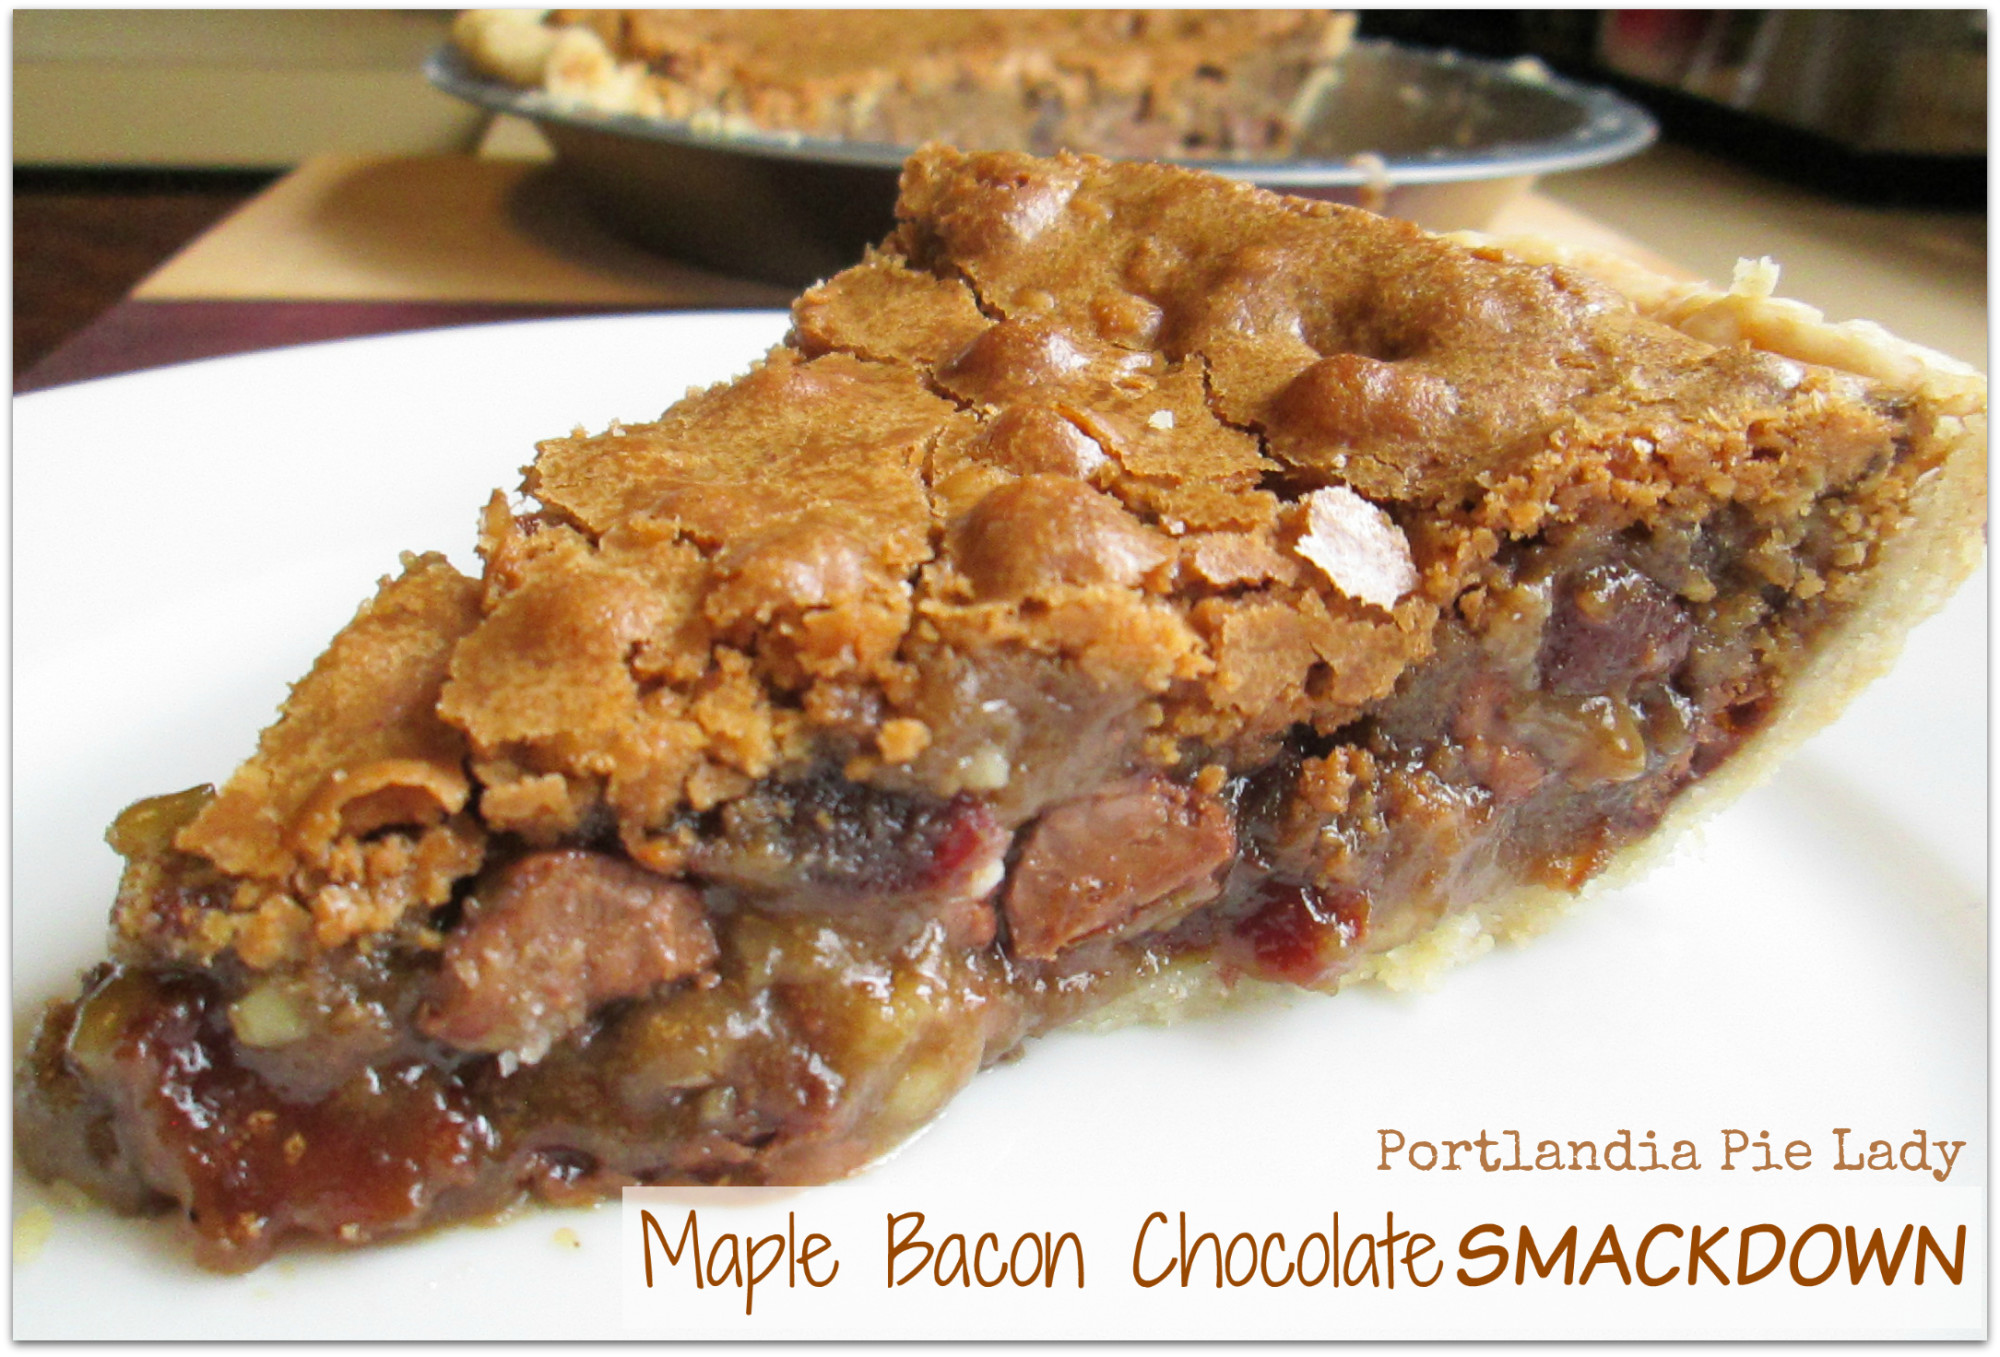 Maple Bacon Chocolate Smackdown!  Chocolate, Bacon, Maple and Walnuts baked in a butter batter; the main event is the eating.